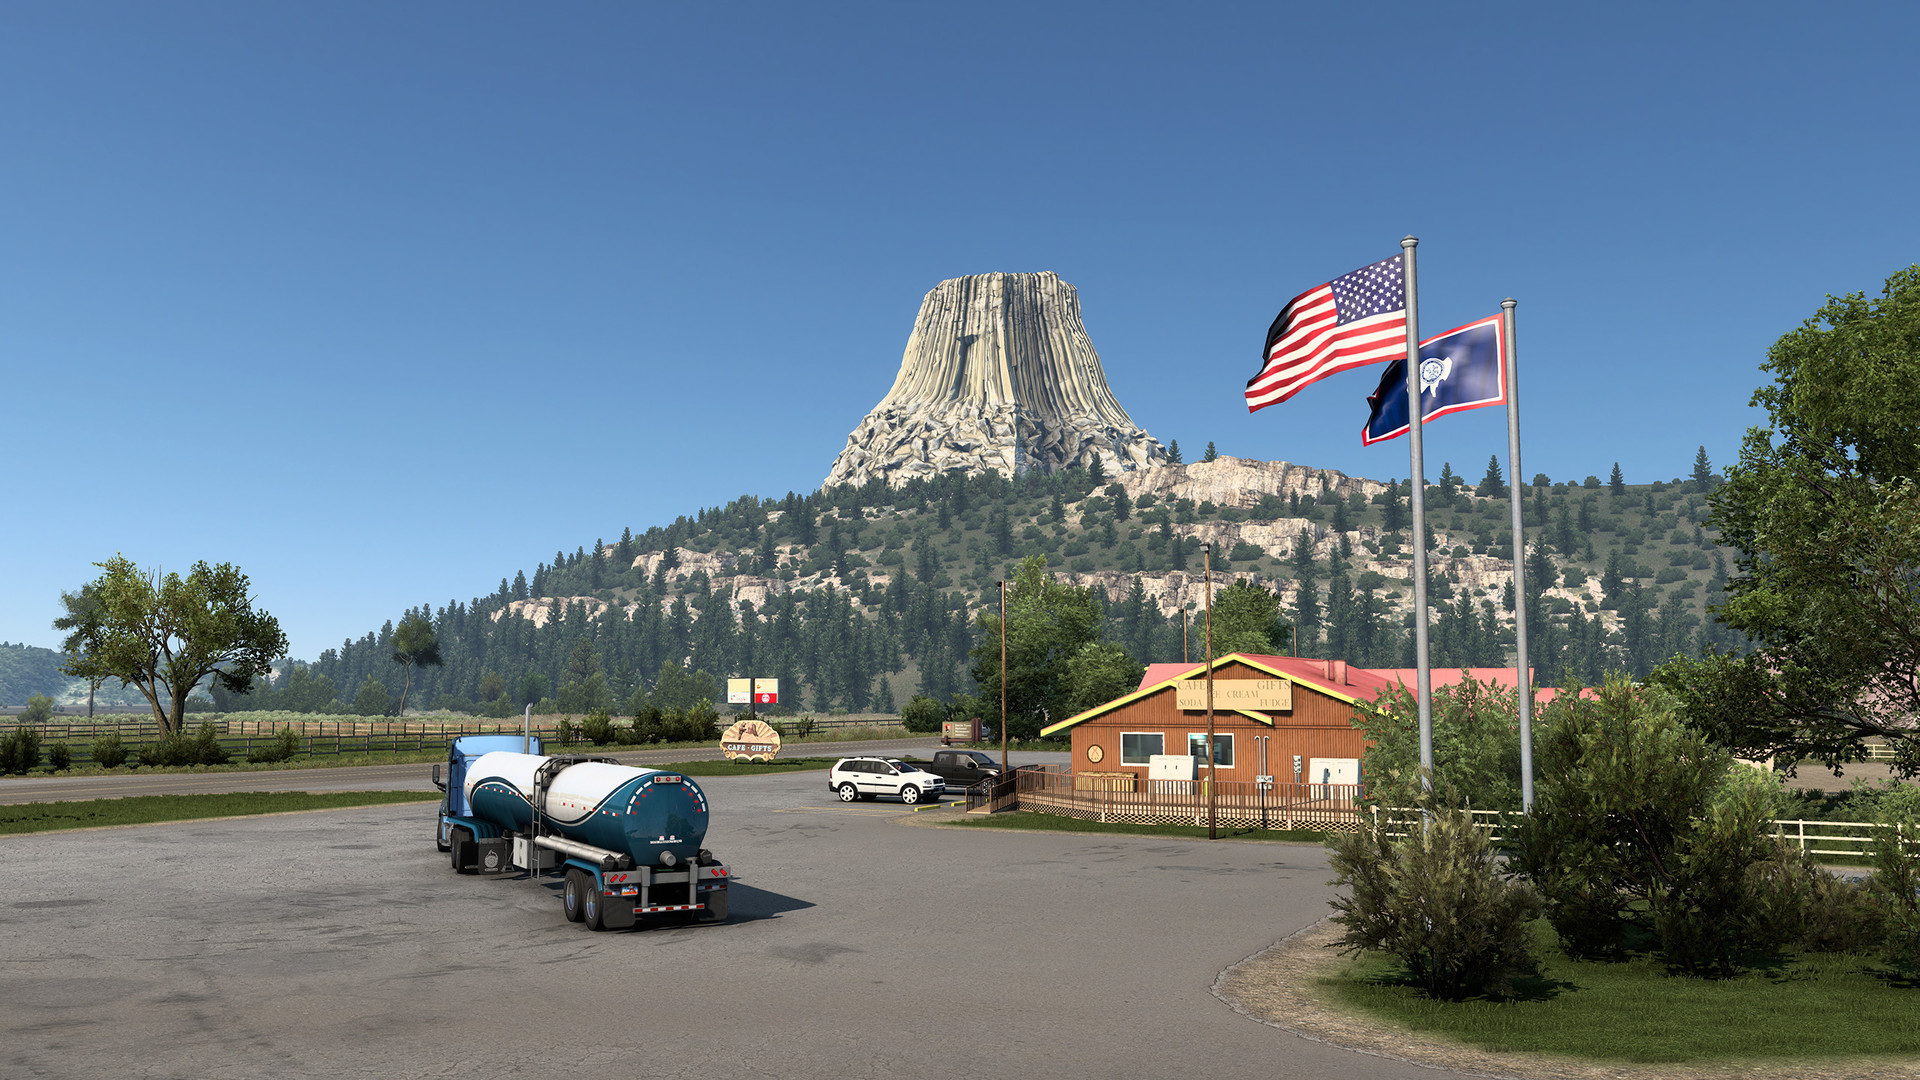 American Truck Simulator: Wyoming is currently the best-selling thing on Steam